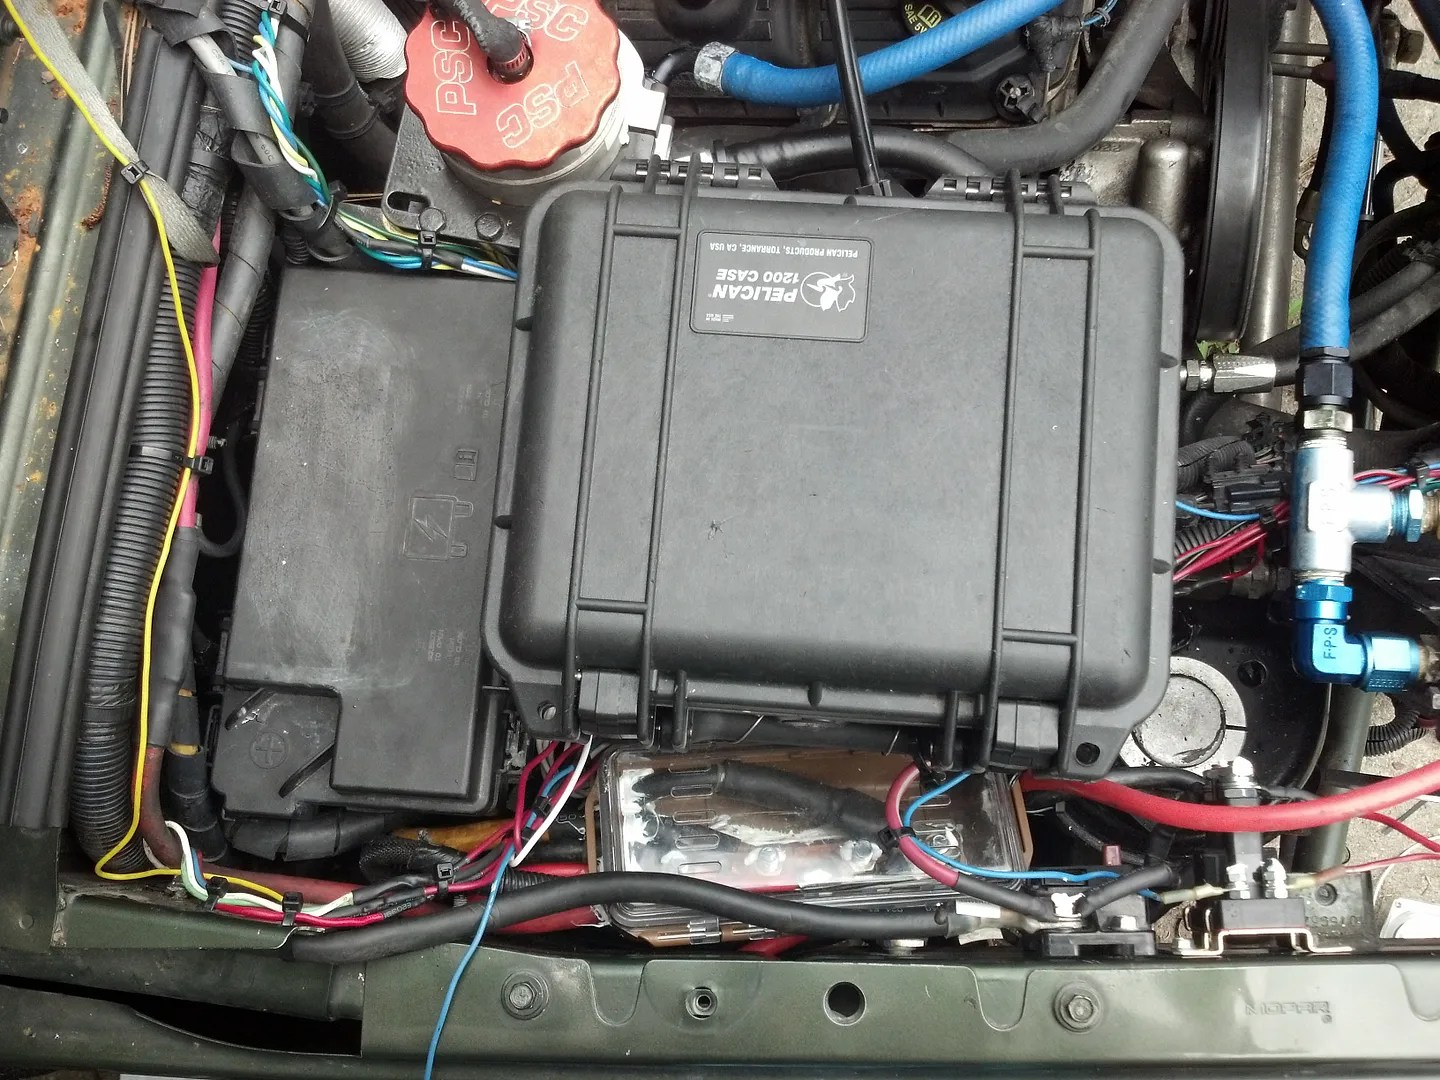 hight resolution of  fuse block to the firewall with not extending any wires other than a couple grounds and a handfull for markers sensors at the grill